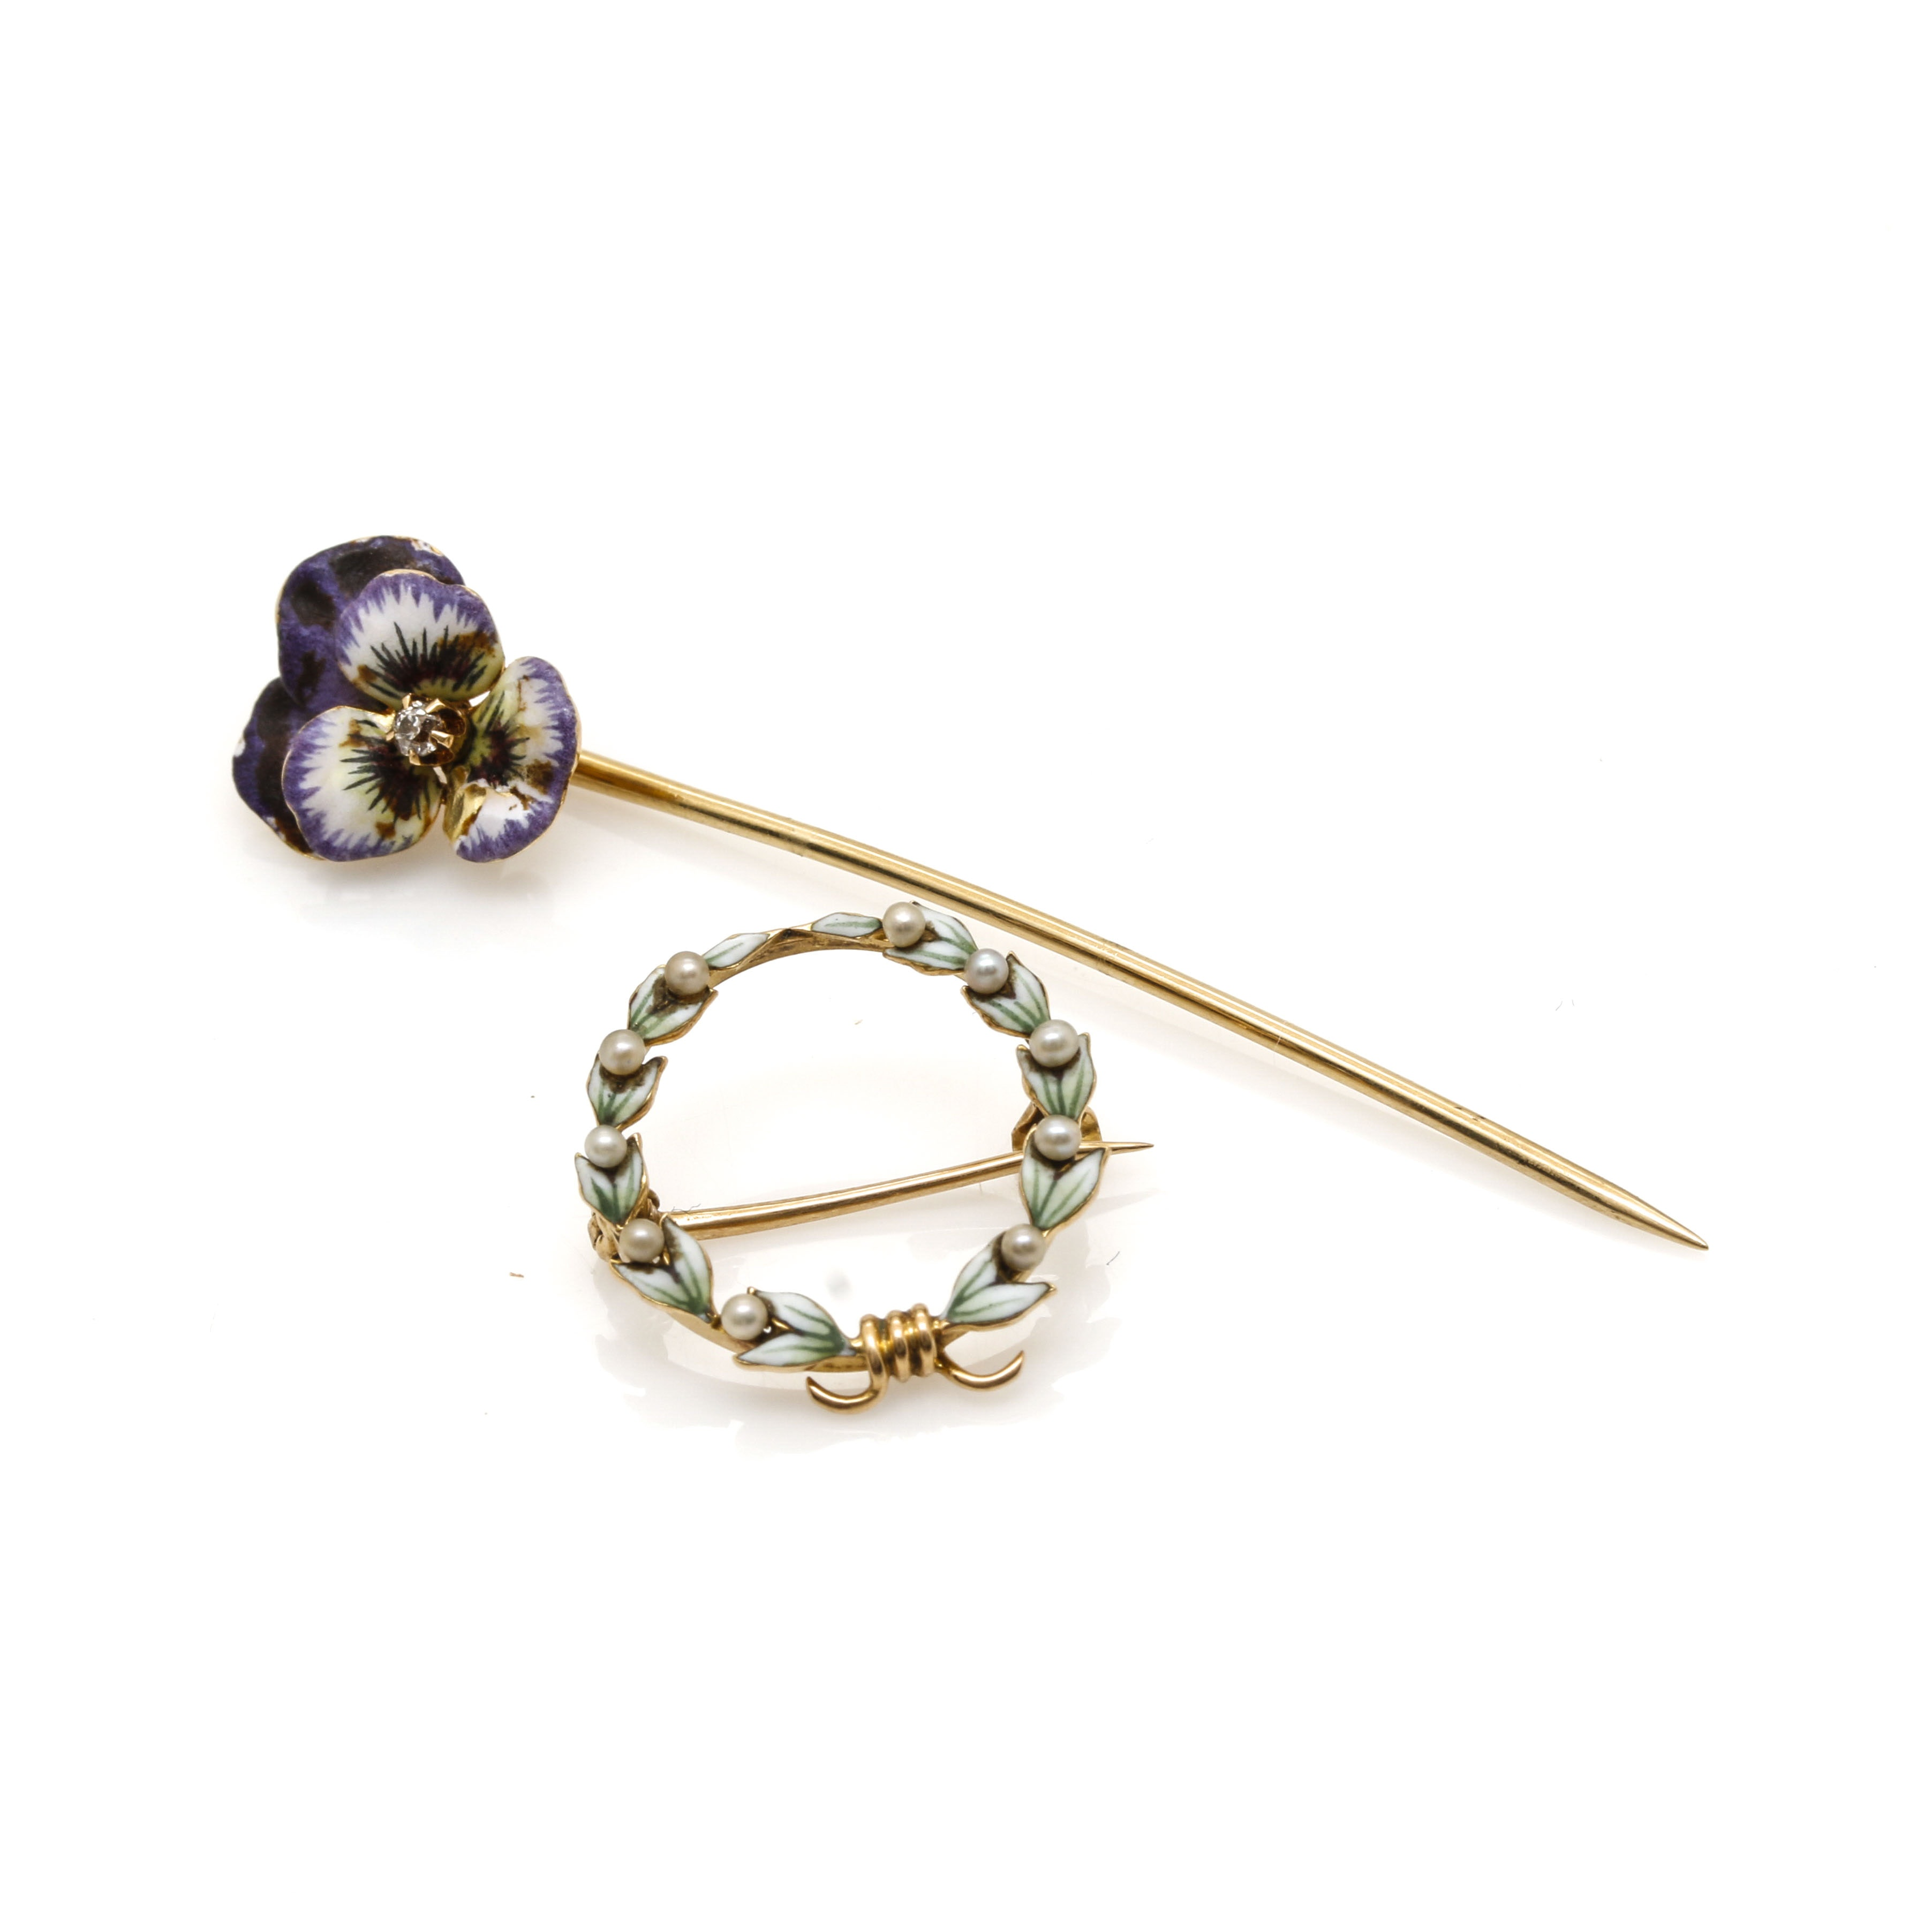 14K Yellow Gold and Diamond Enamel Pin and Seed Pearl Brooch